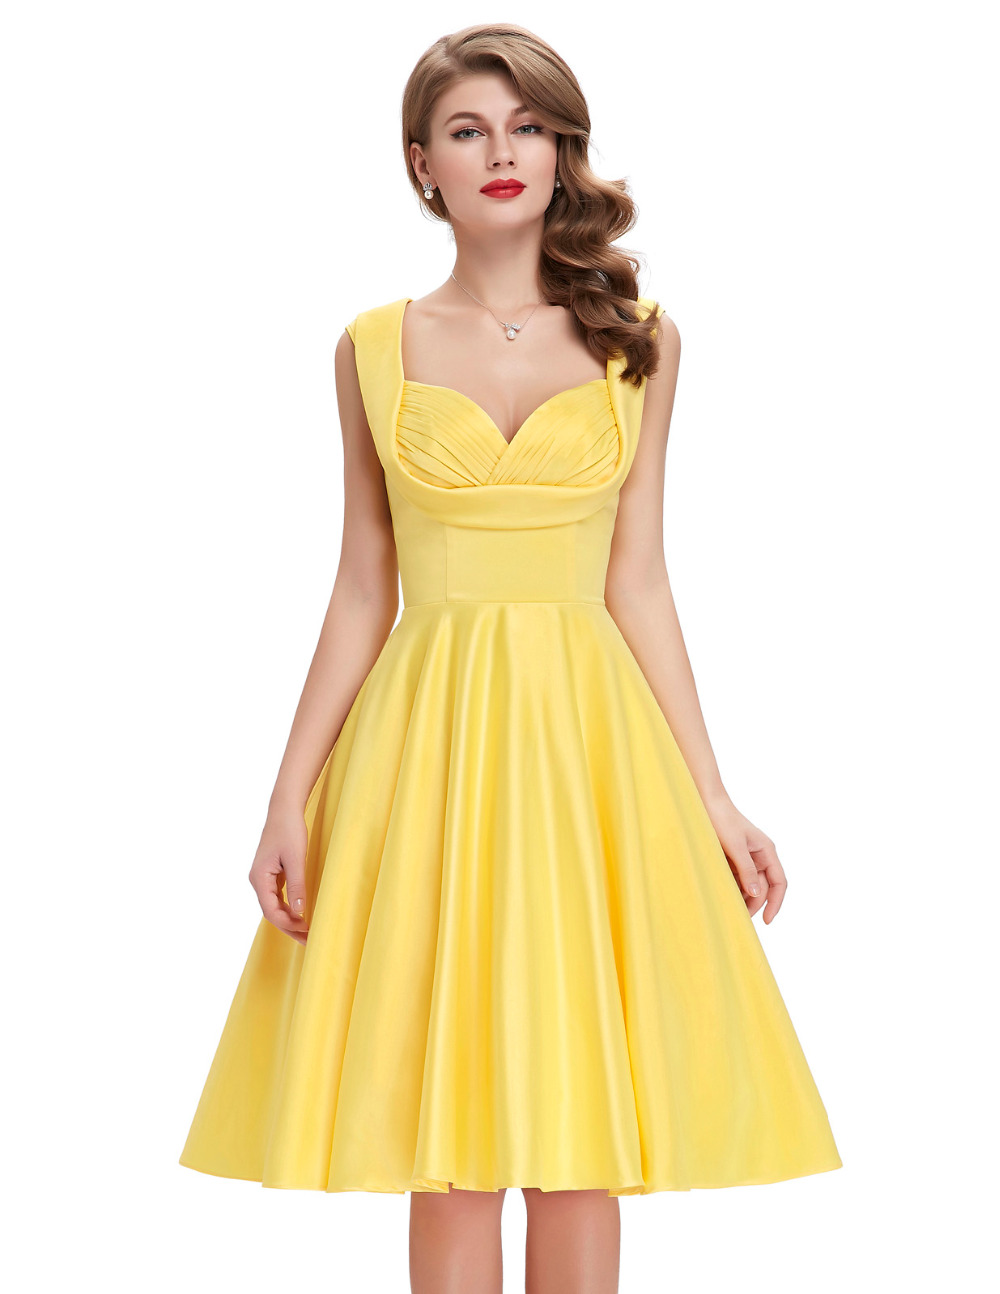 1950s Vintage Pinup Dresses 2016 New Arrival Summer Women